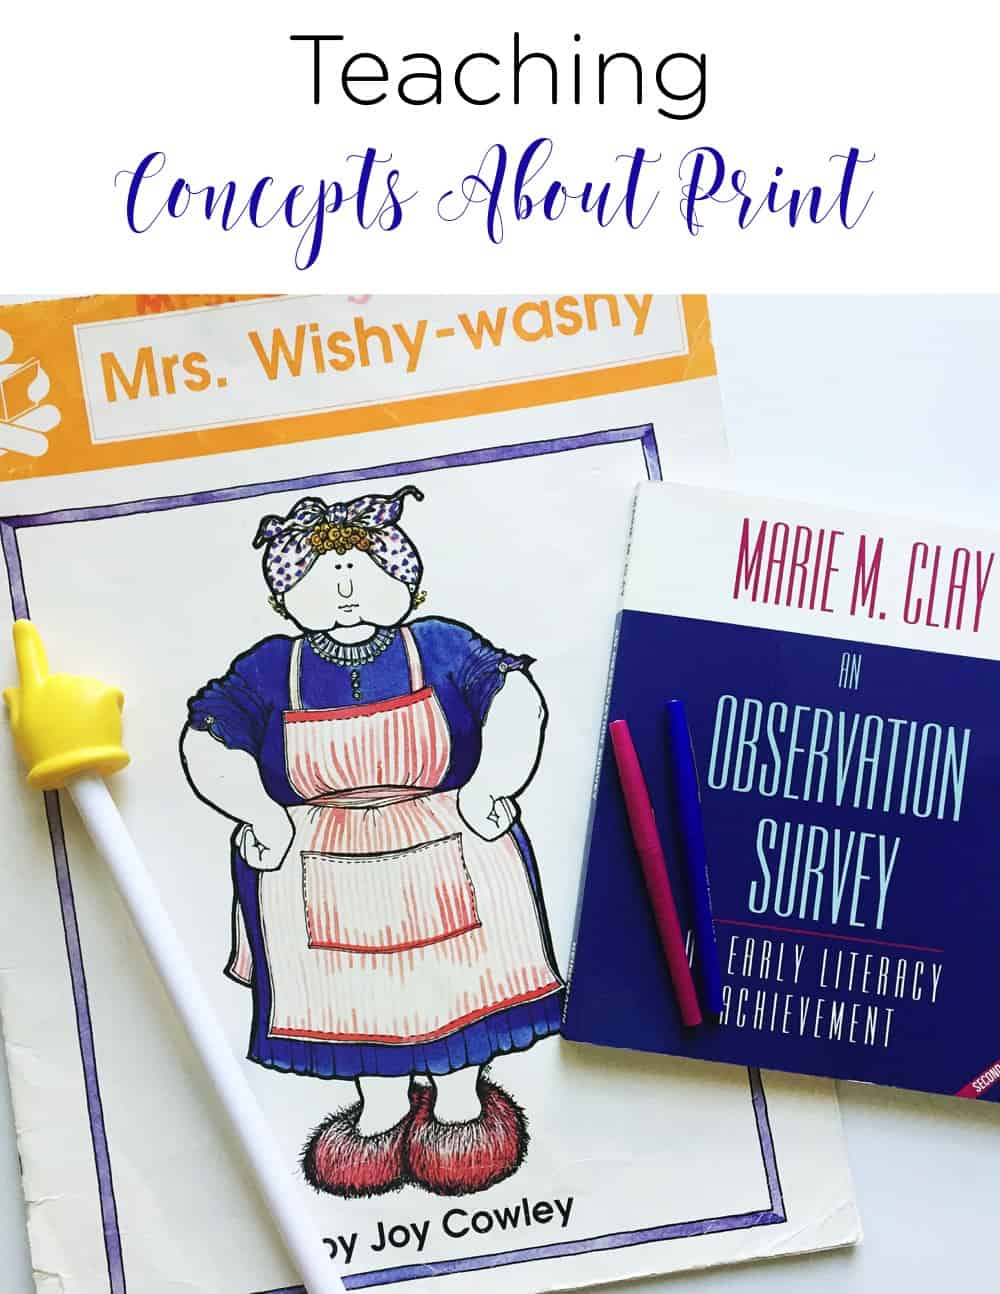 Teaching concepts about print is an important early literacy skill to be mastered. The skills are necessary as students learn how our language works and looks in print. See how this teacher weaves it into her day and assesses her little learners. #literacy #preschool #kindergarten